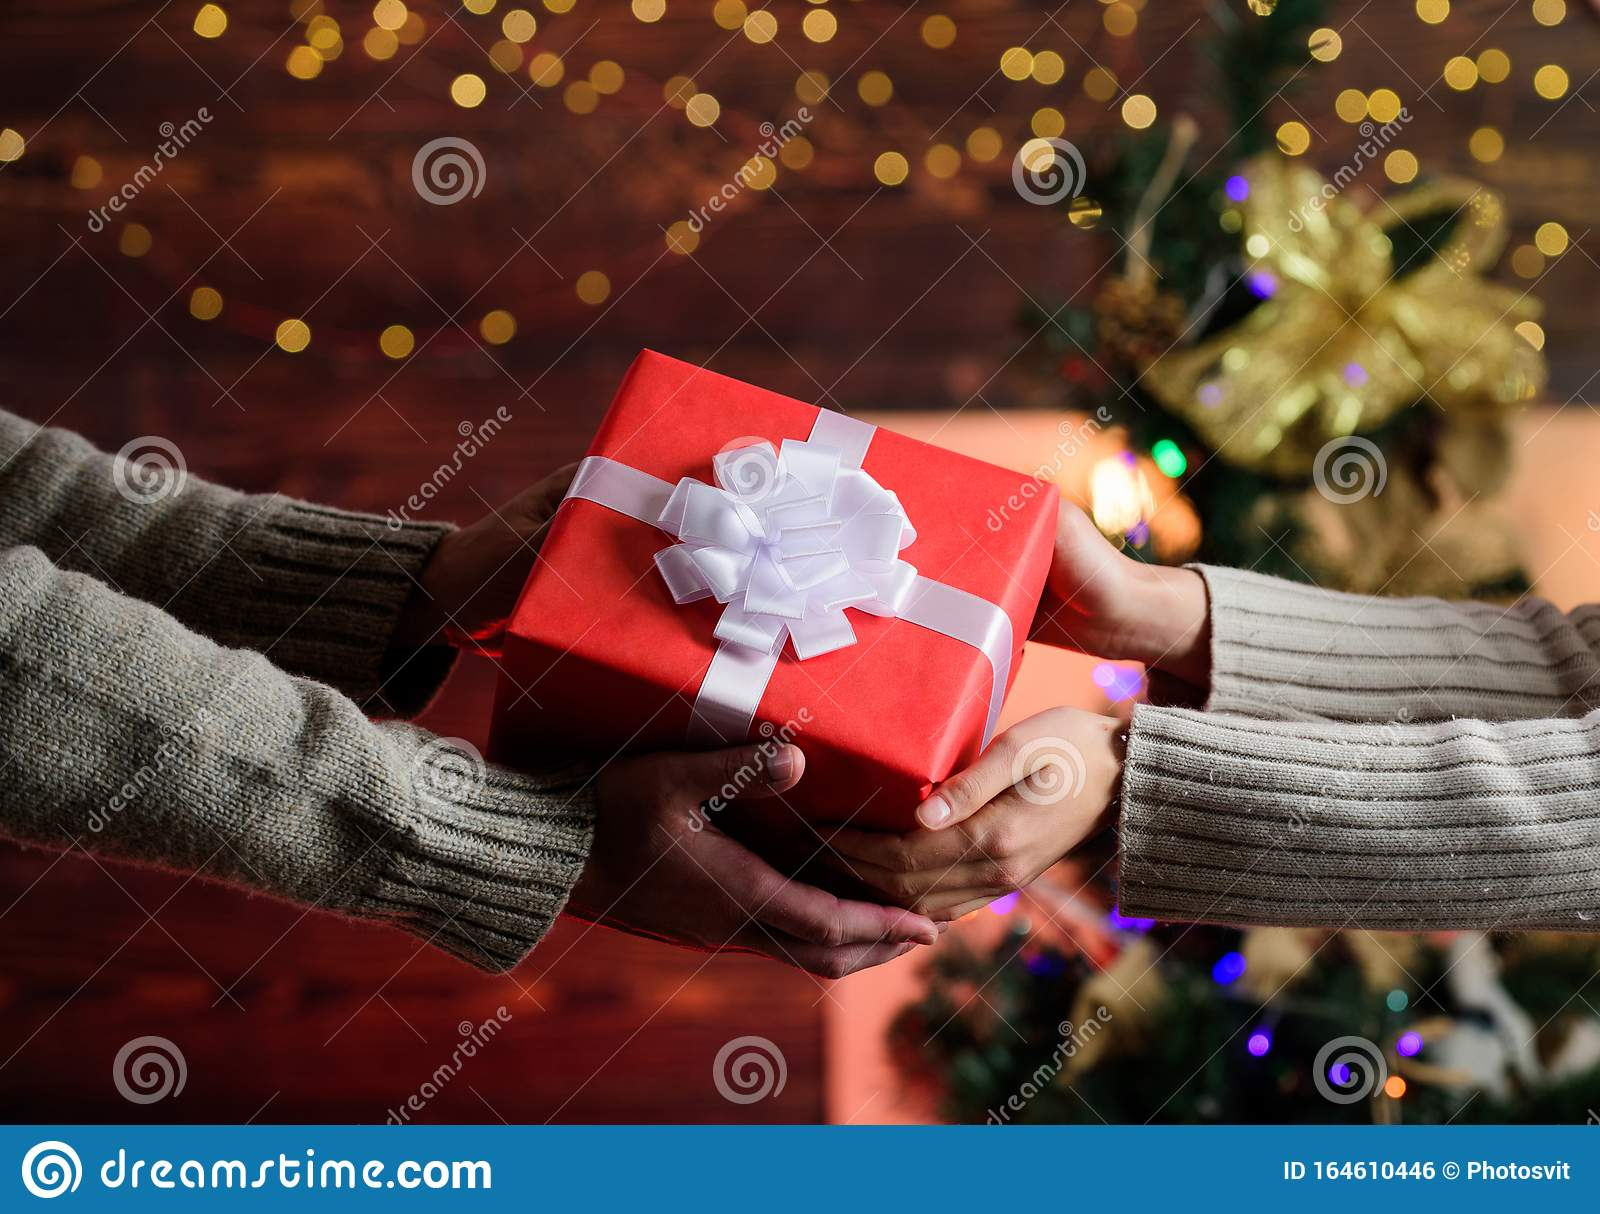 New Year Is Coming Present For Xmas Holiday Gift With Love Man Give Woman Box Family Values Loving Each Other Stock Photo Image Of Purchase Shopping 164610446